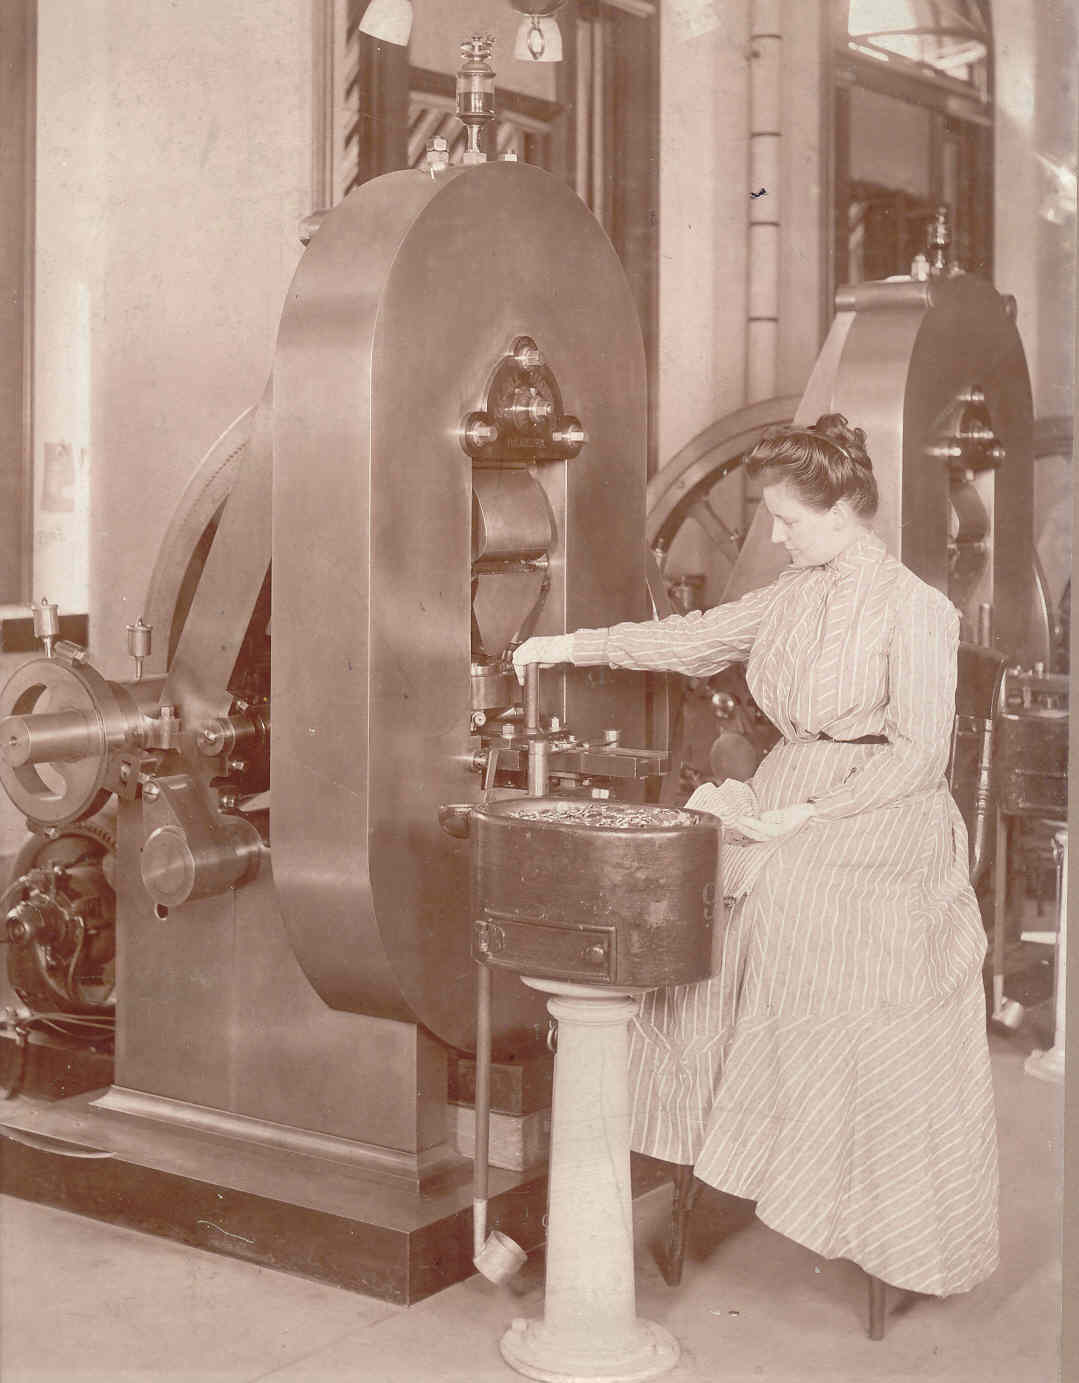 Coin Press at Philadelphia Mint, 1903 – Once steam power was introduced at the Mint in the 1830s, women moved into coin production jobs.